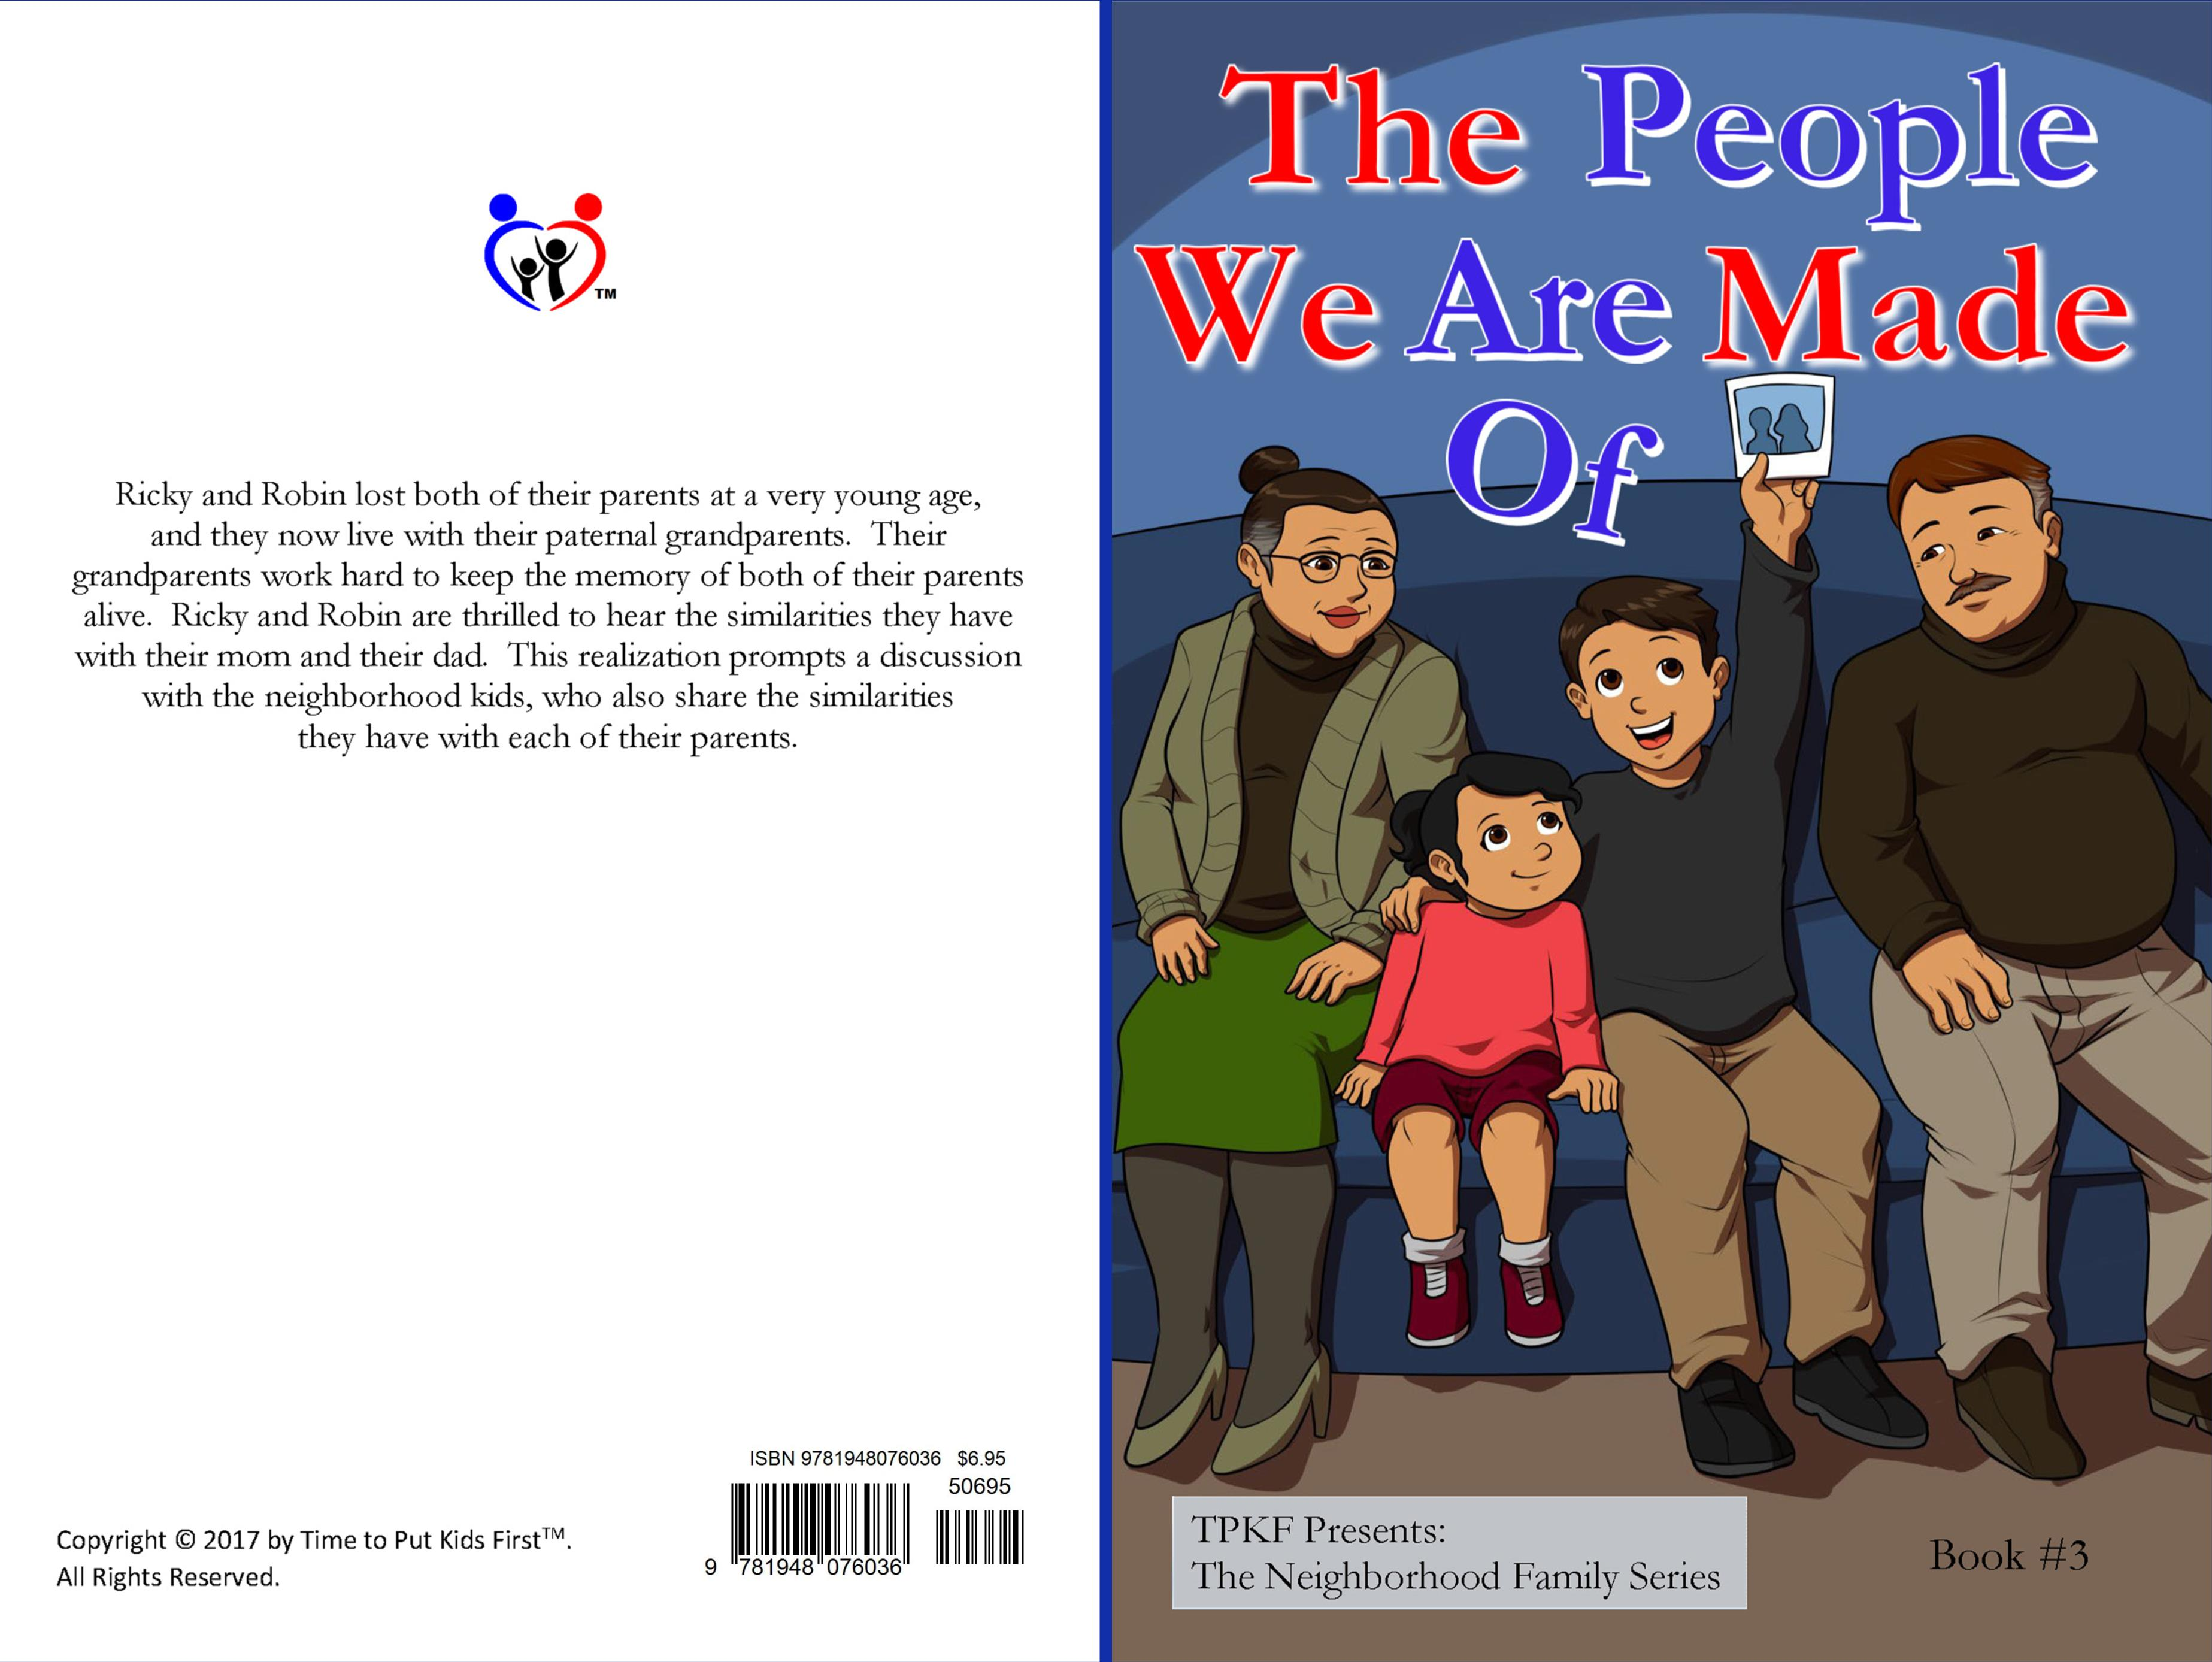 The People We Are Made Of cover image